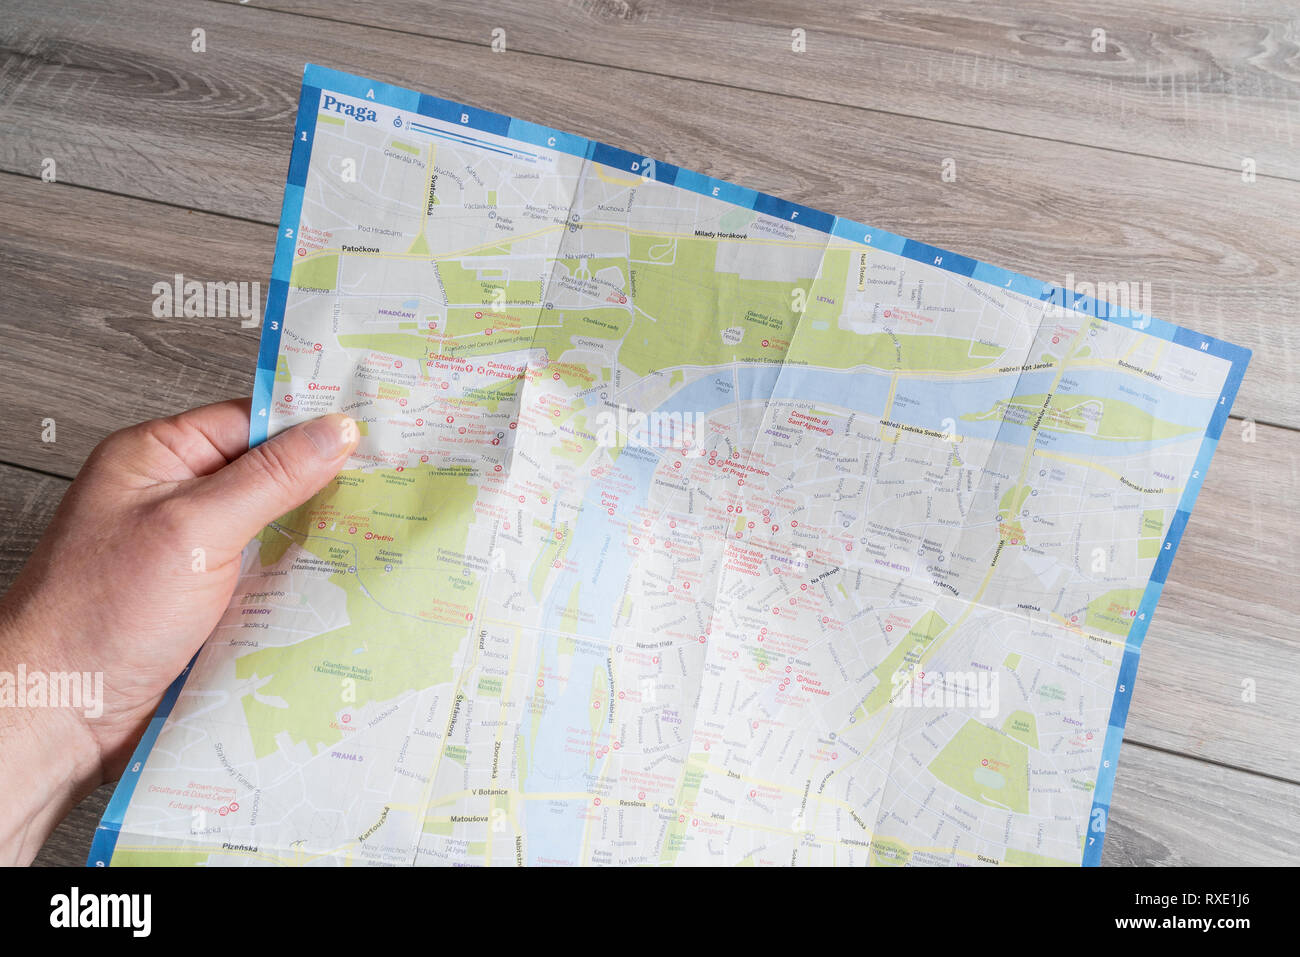 consultation of the Prague city map - Stock Image